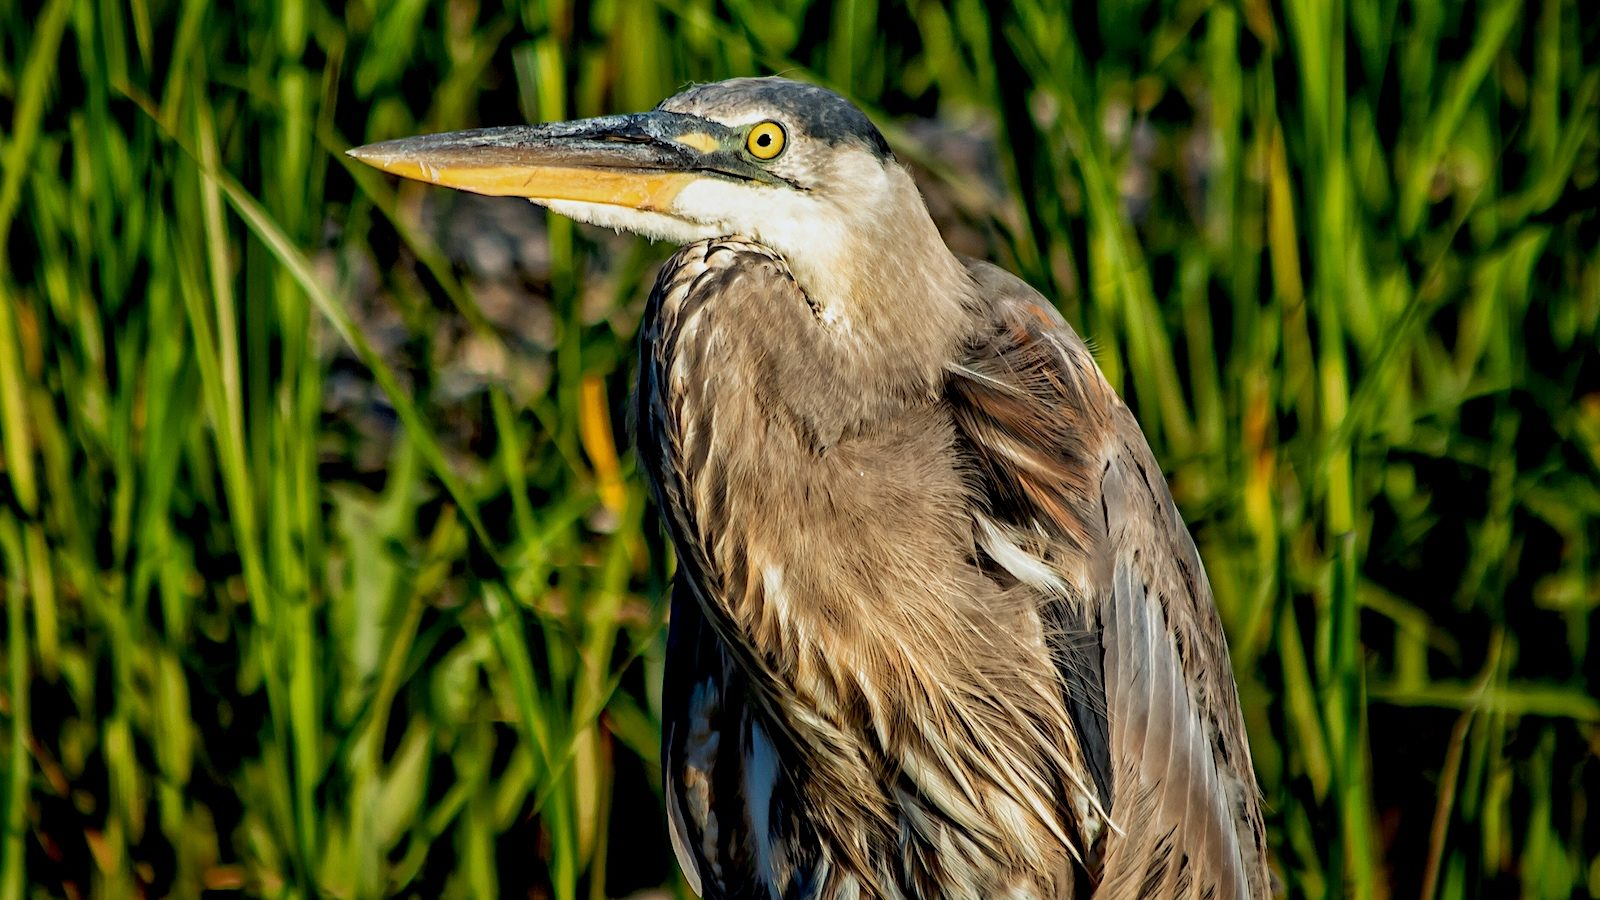 Blue Heron close up